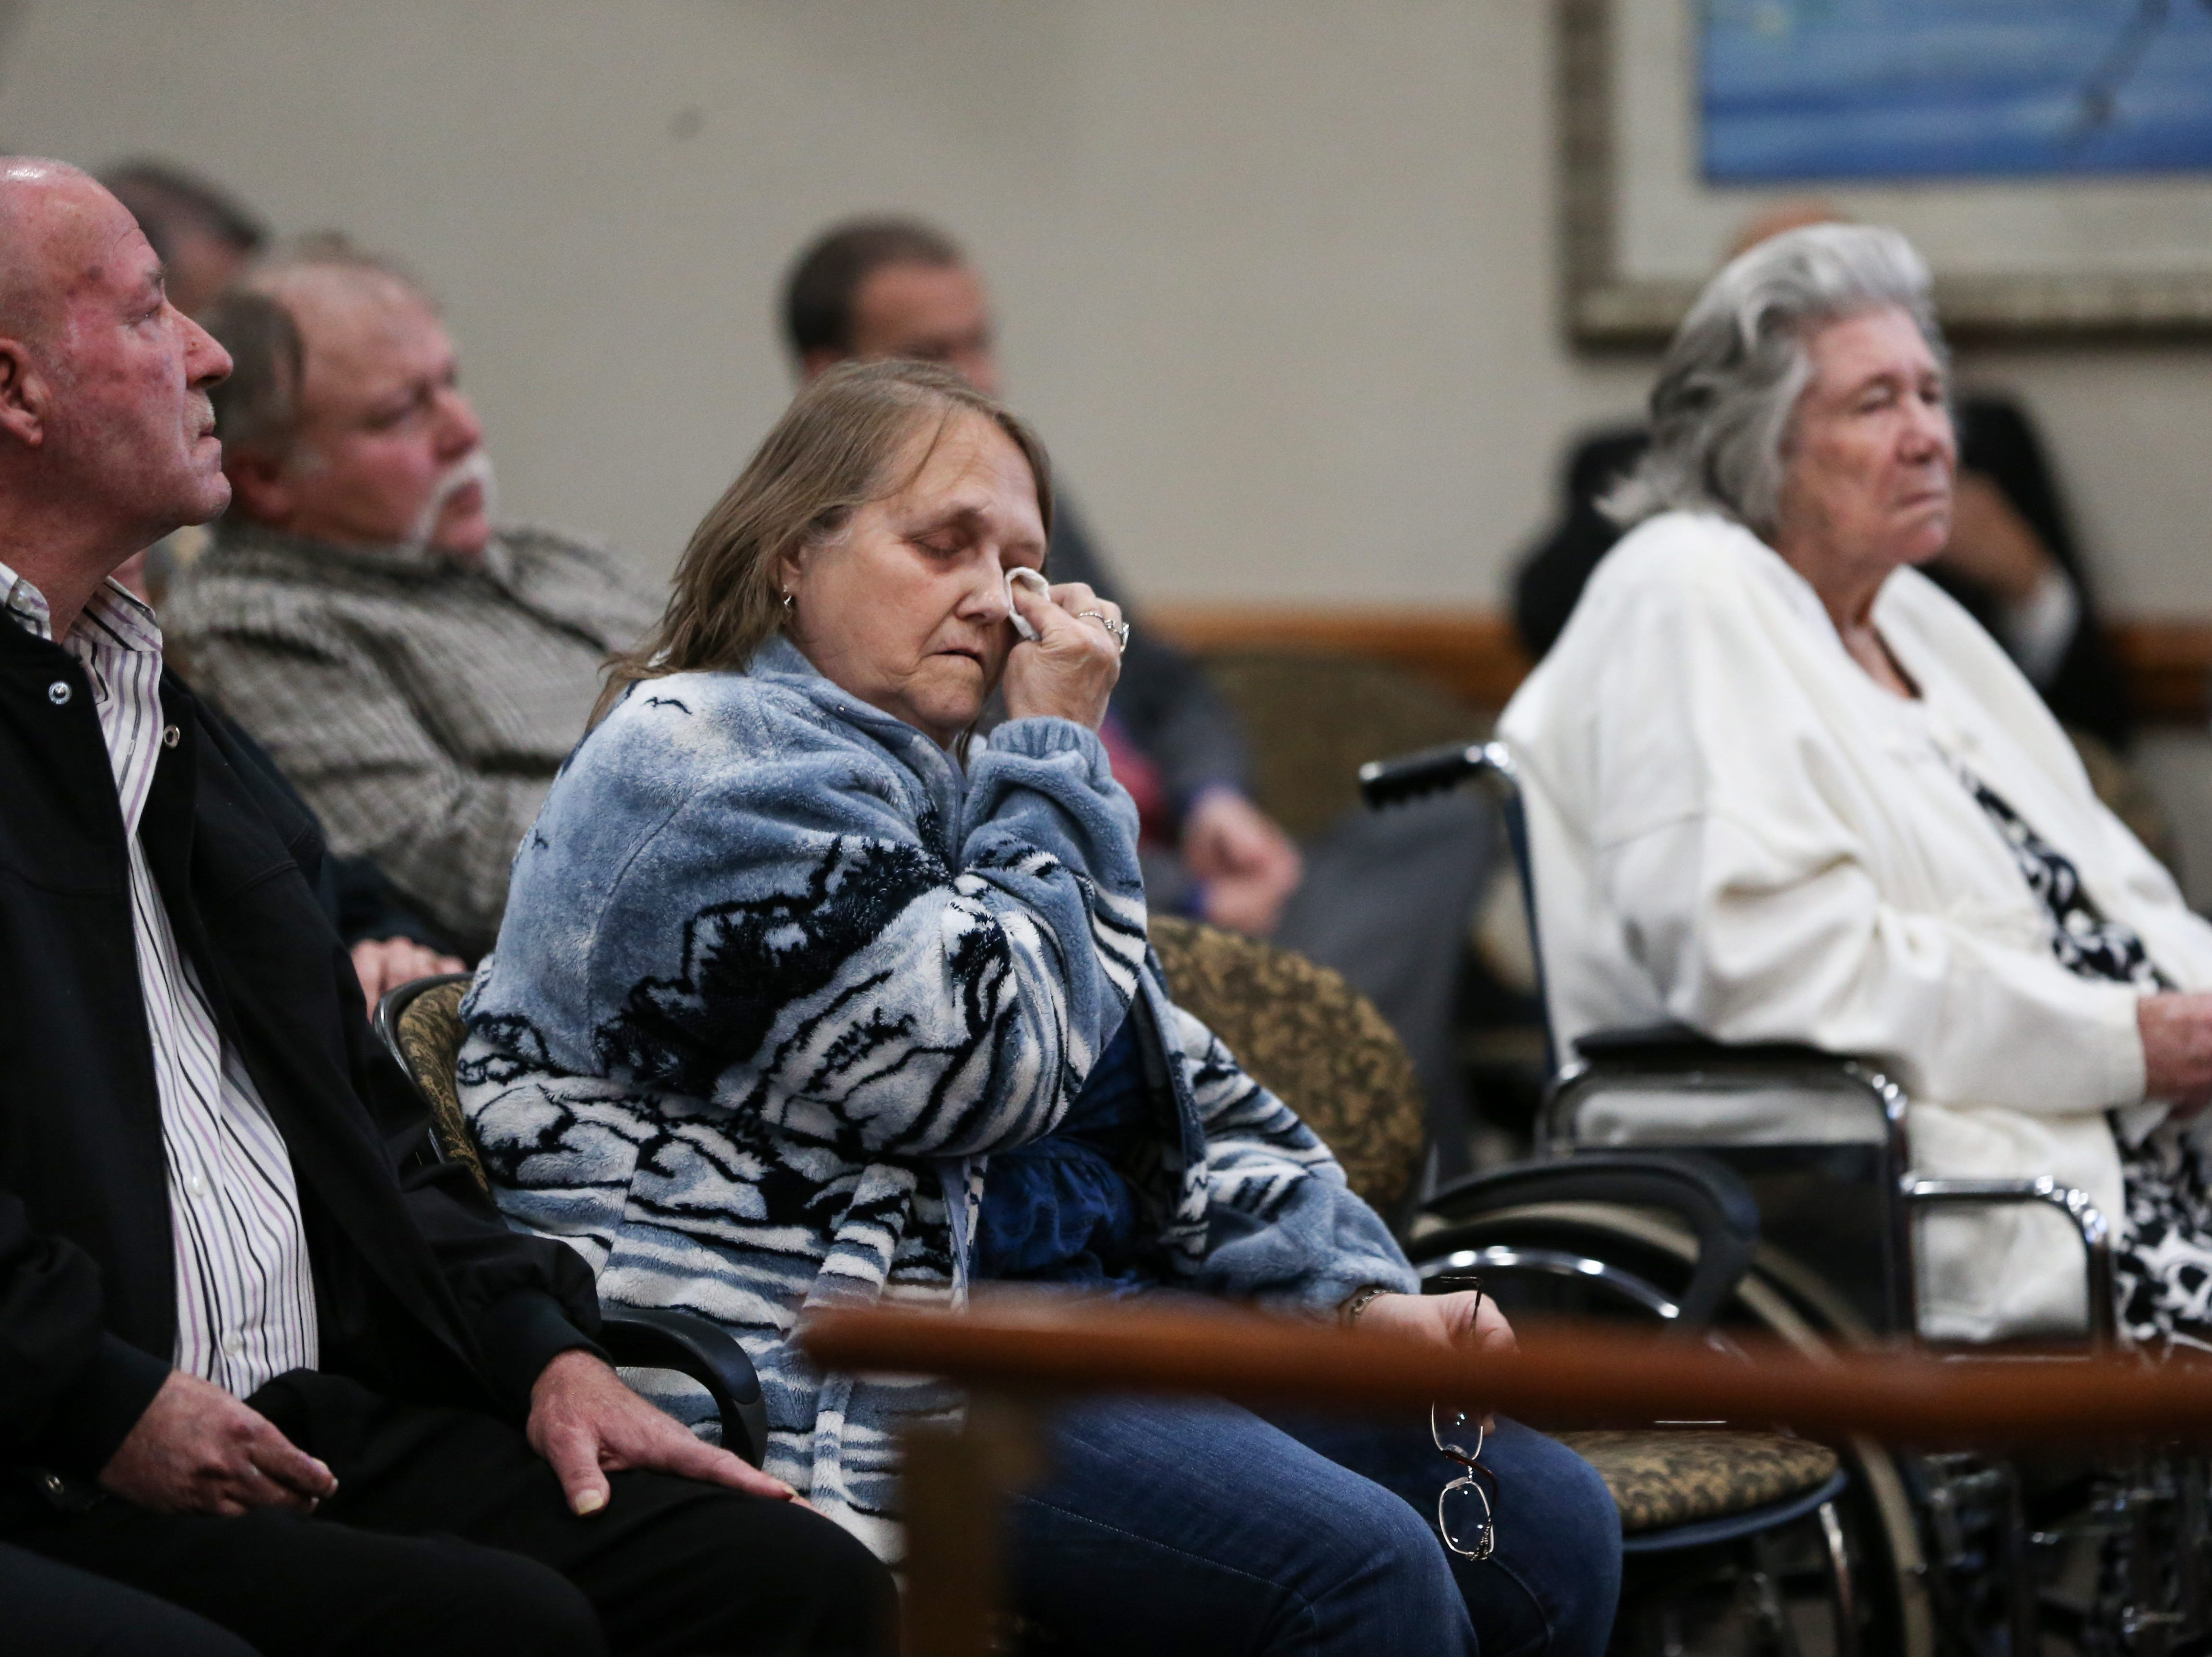 Charlene Padgett, daughter-in-law of the Groveland Four accuser Norma Padgett, right, wipes tears during a clemency board hearing where the Groveland Four were pardoned Friday, Jan. 11, 2019.